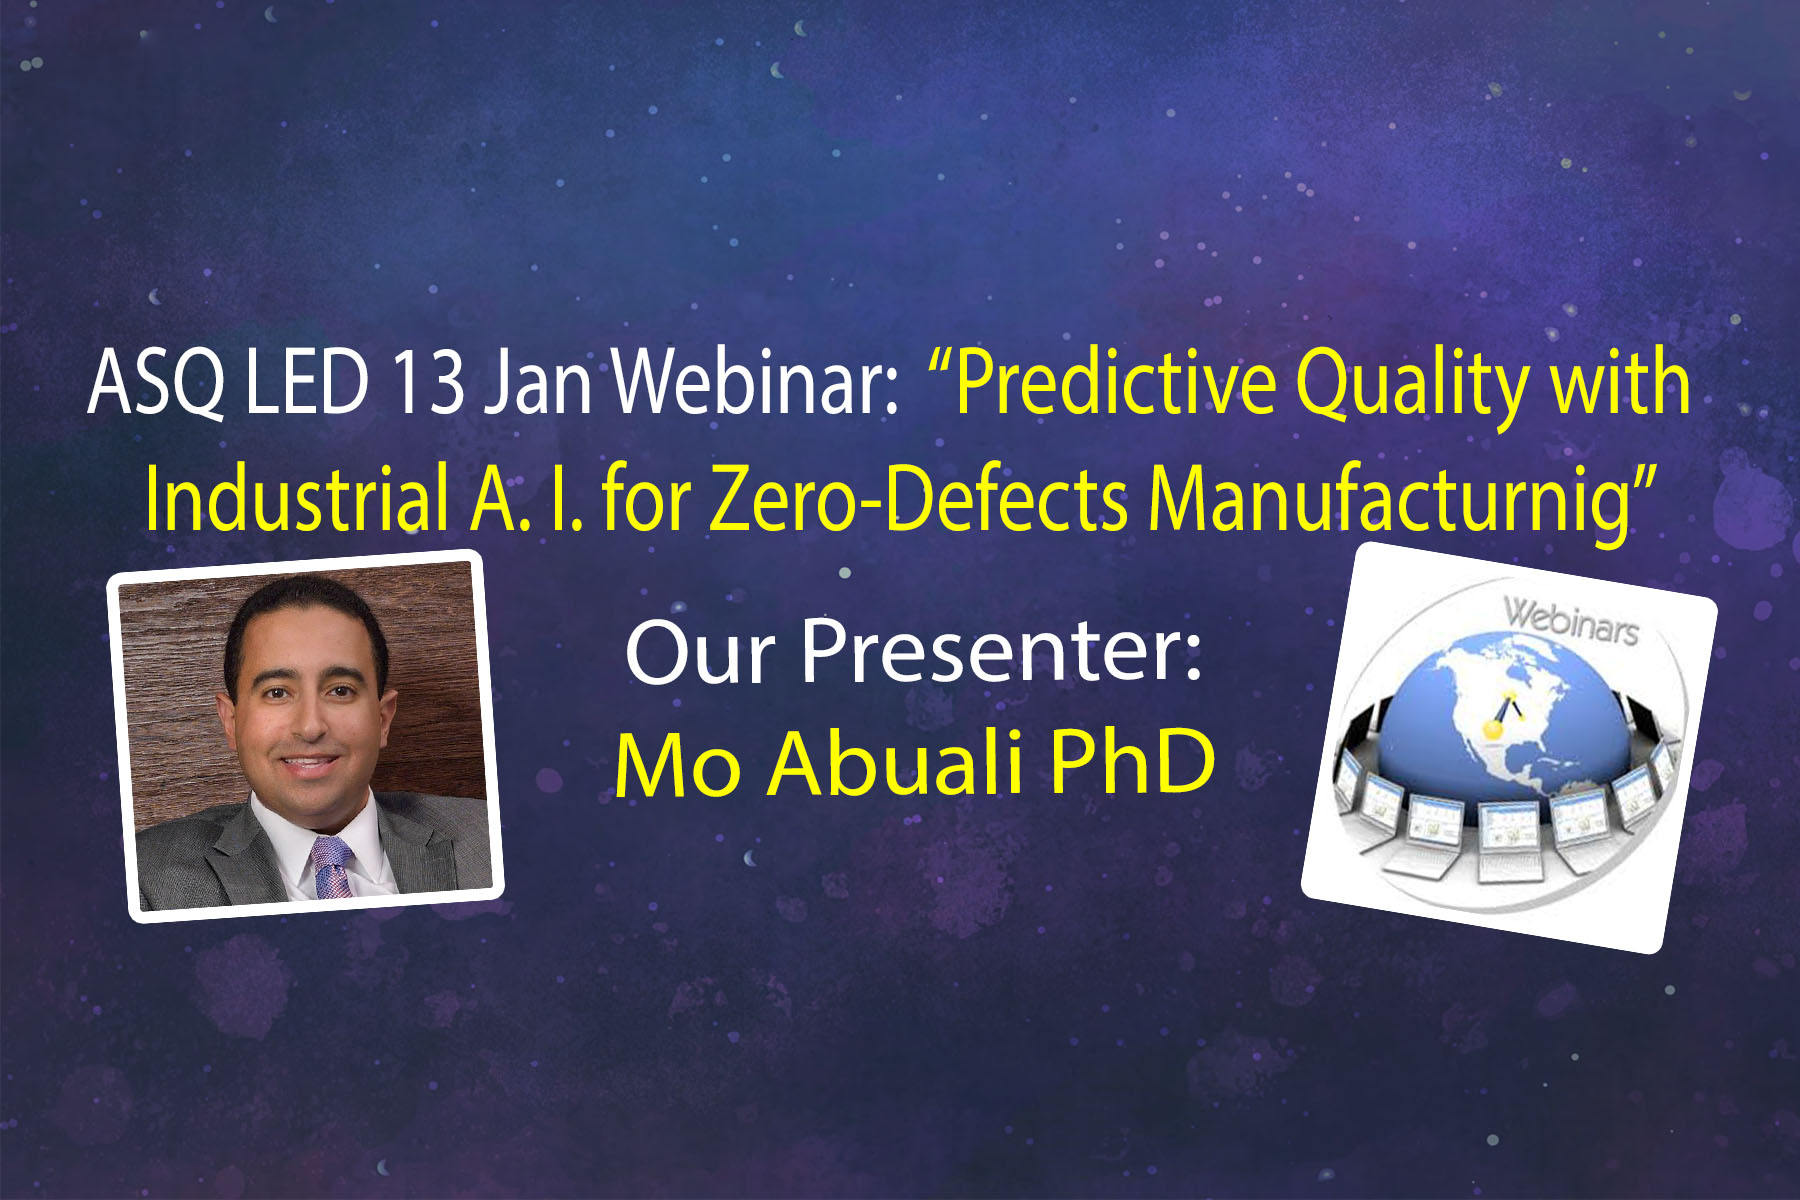 """ASQ LED 13 Jan 2021 Webinar -  """"Predictive Quality with Industrial A.I. for Zero-Defects Manufacturing"""" with Dr. Mo Abuali 2529"""